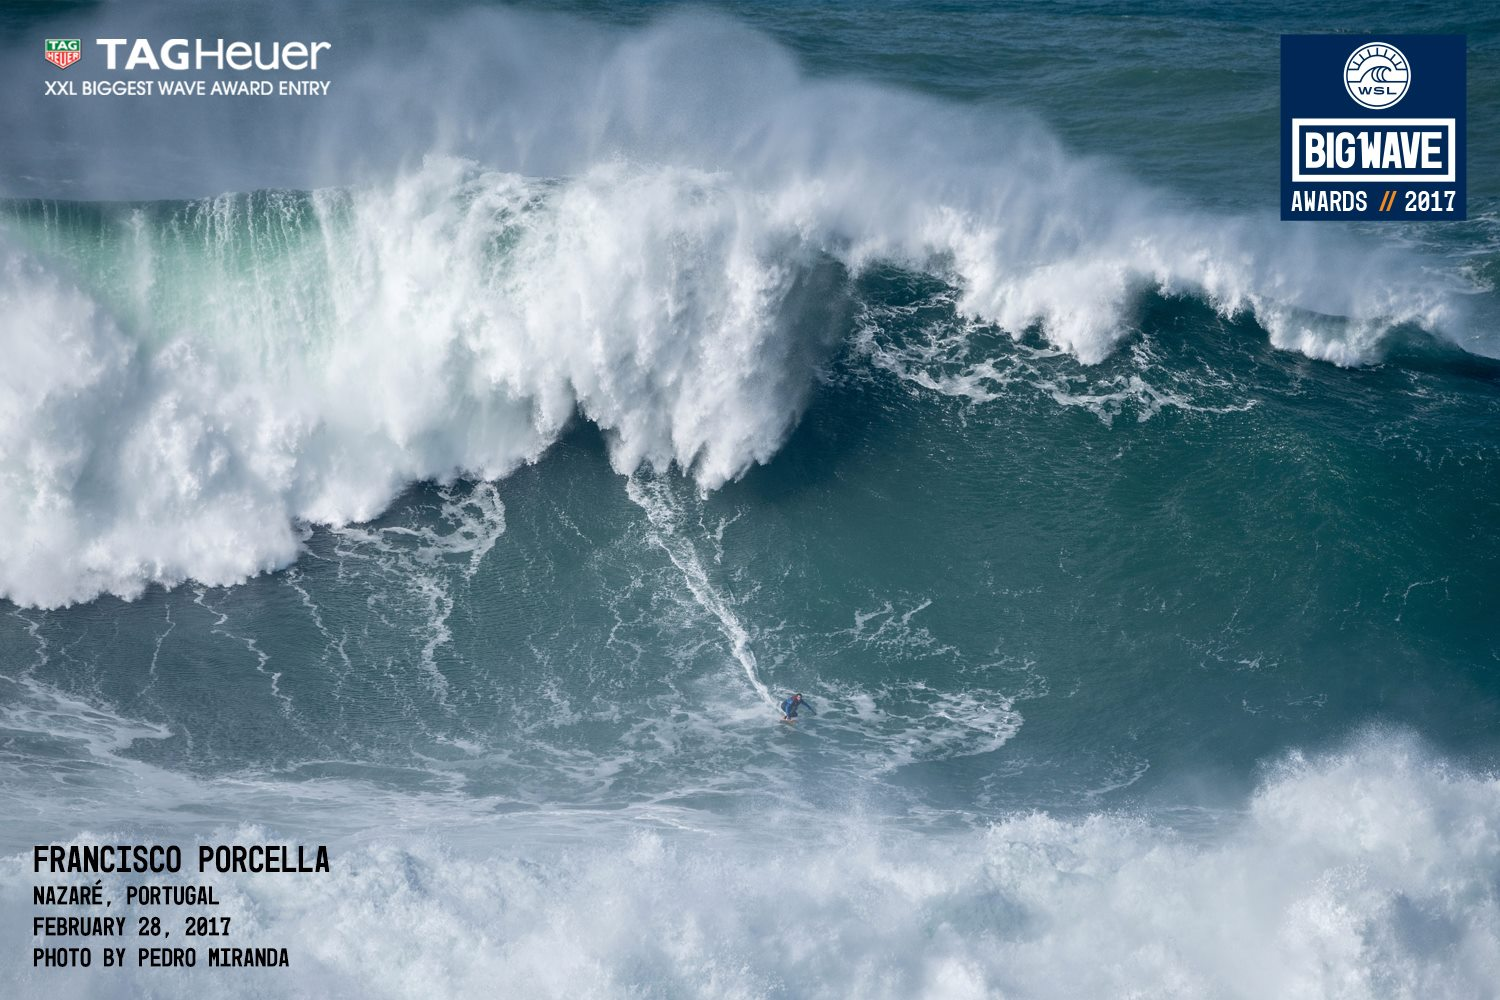 nazare francisco porcella 02